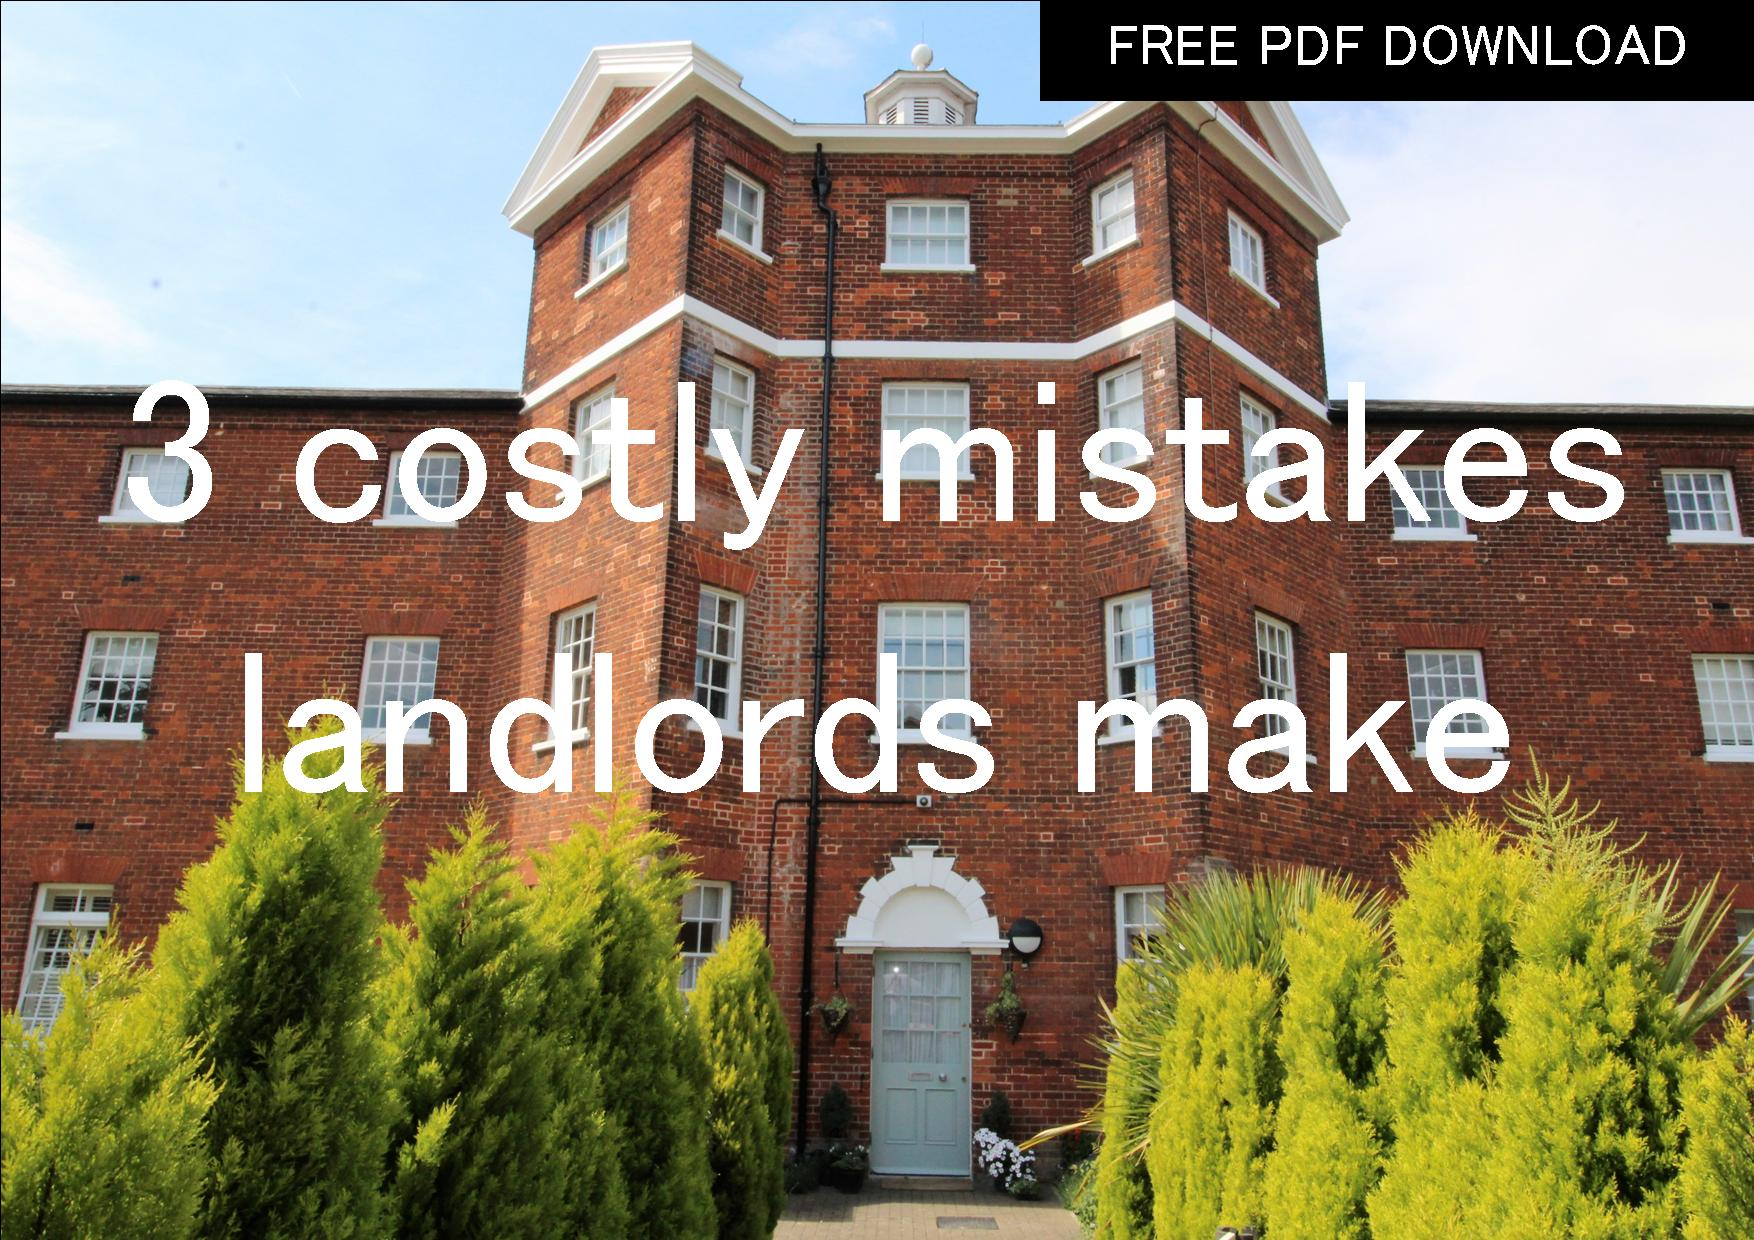 3 costly mistakes landlords make when letting a property